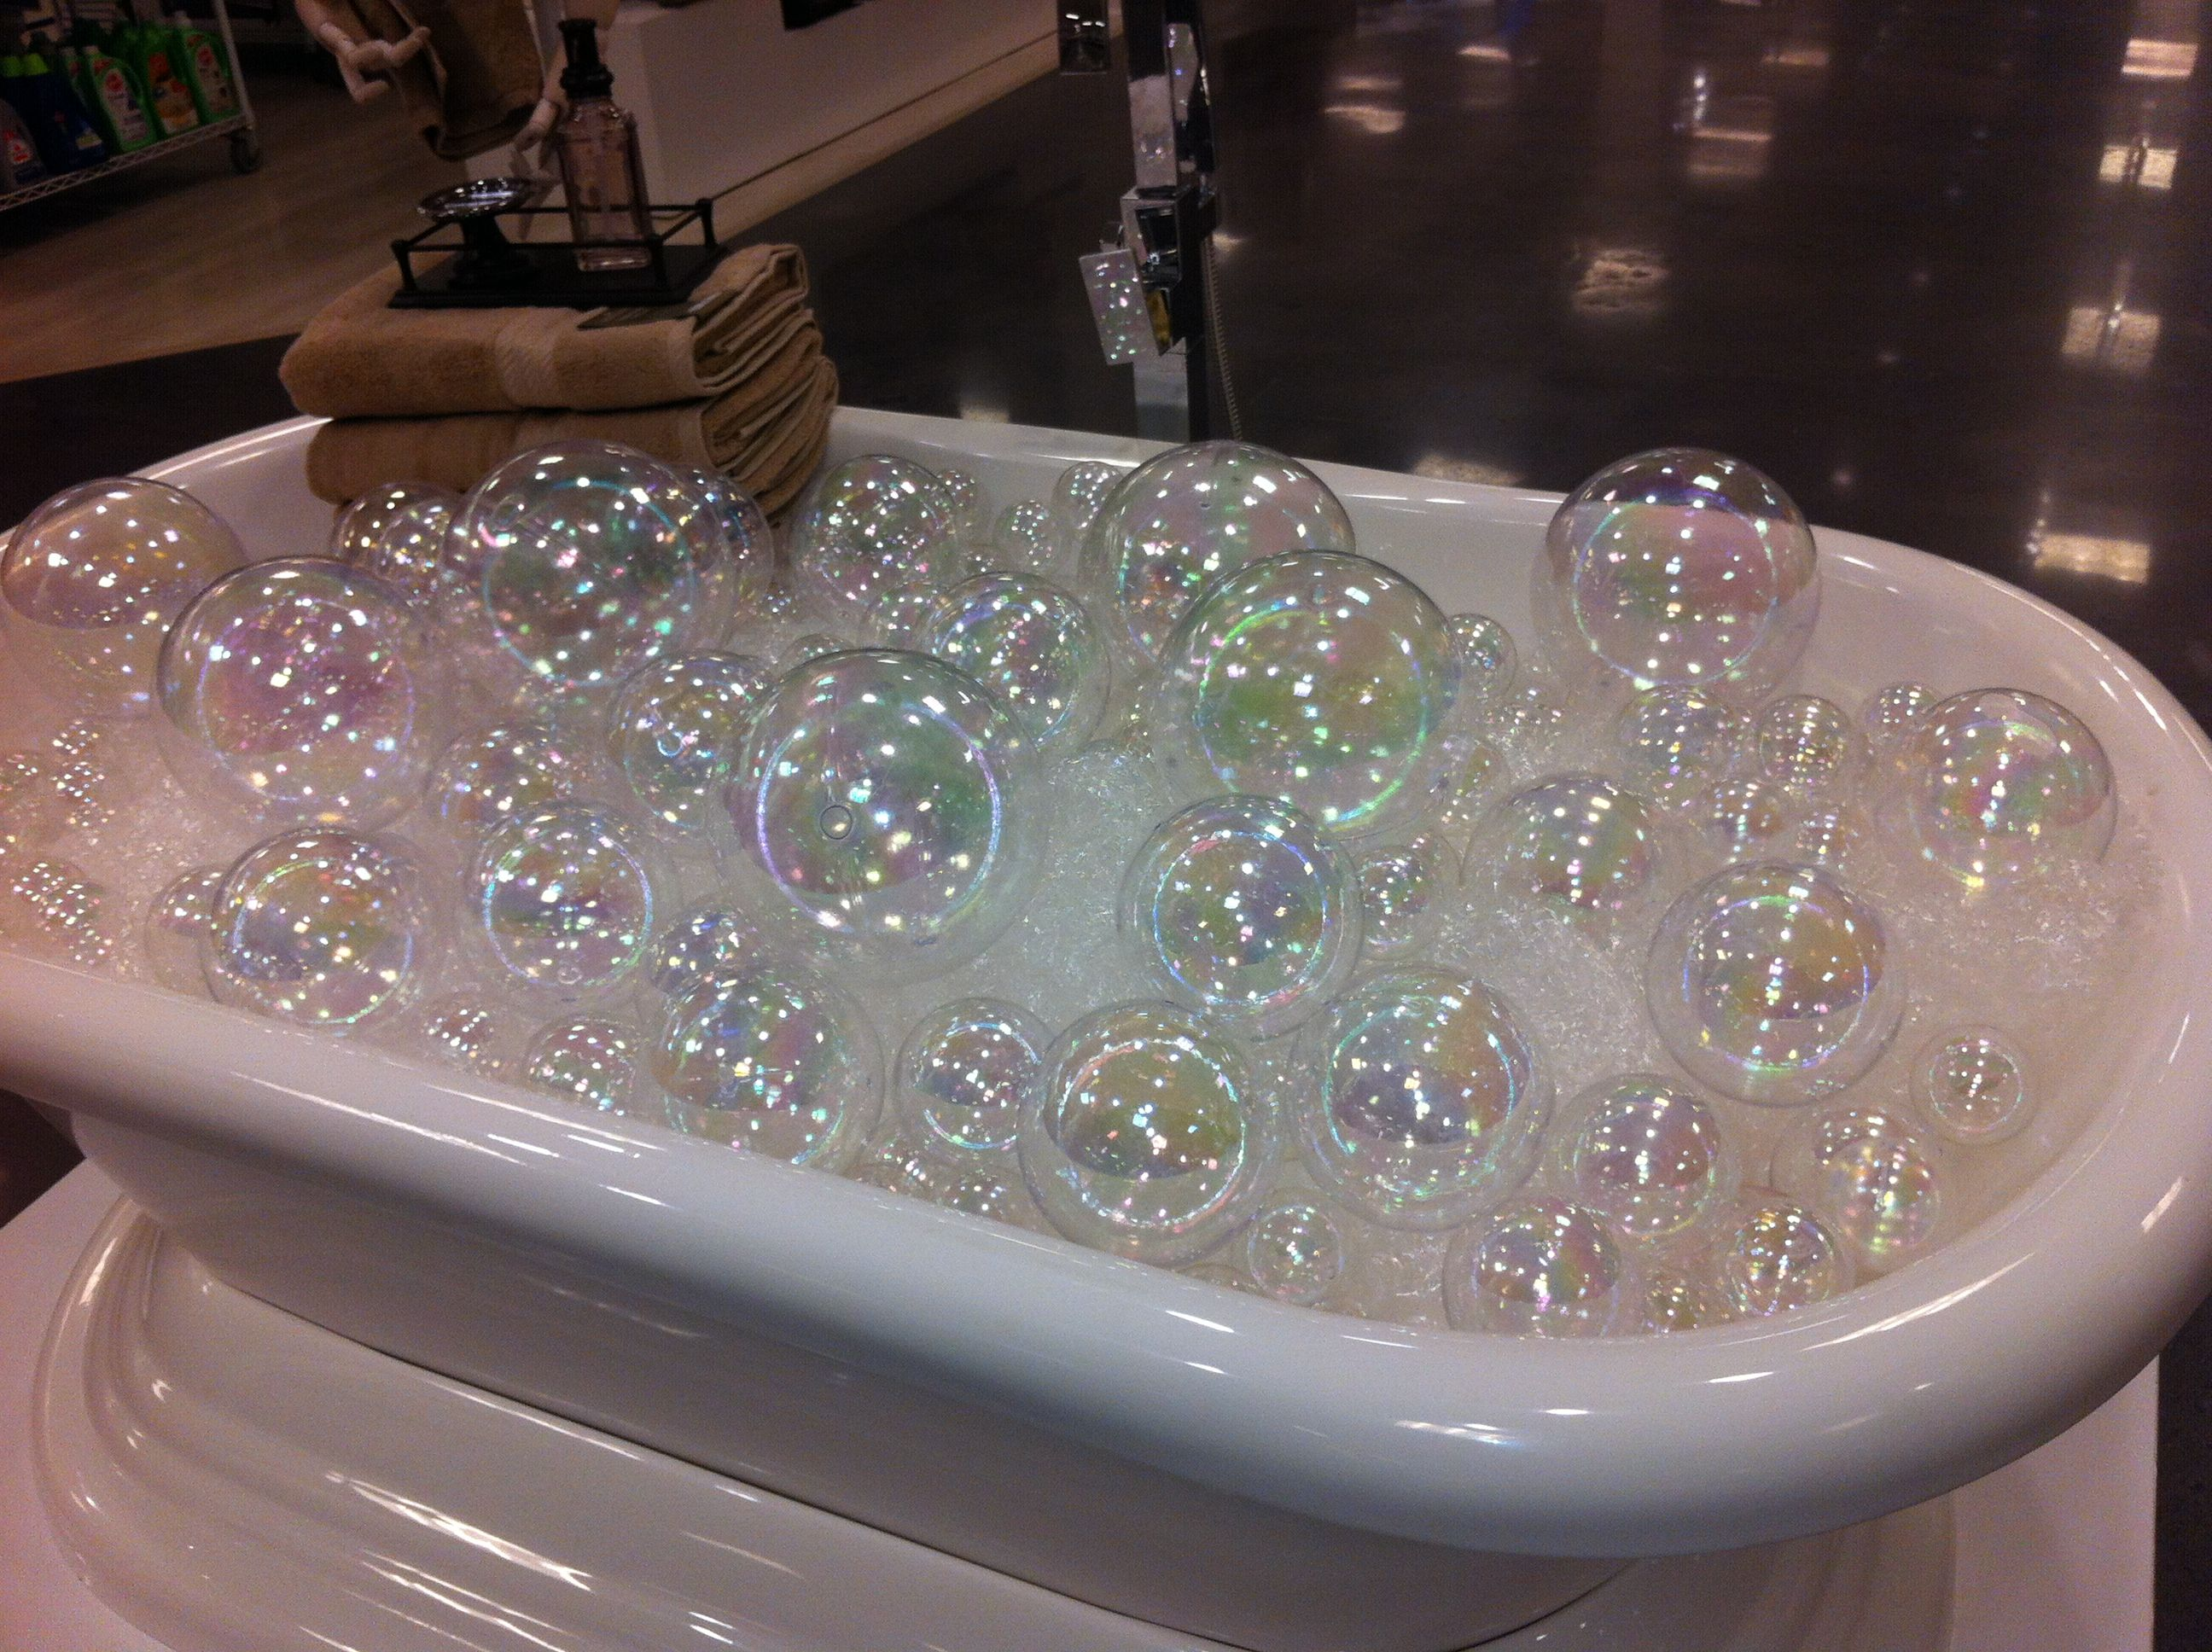 Plastic Clear Balls Bubble Wrap In Tub Pet Store Display Soap Shop Dog Grooming Salons